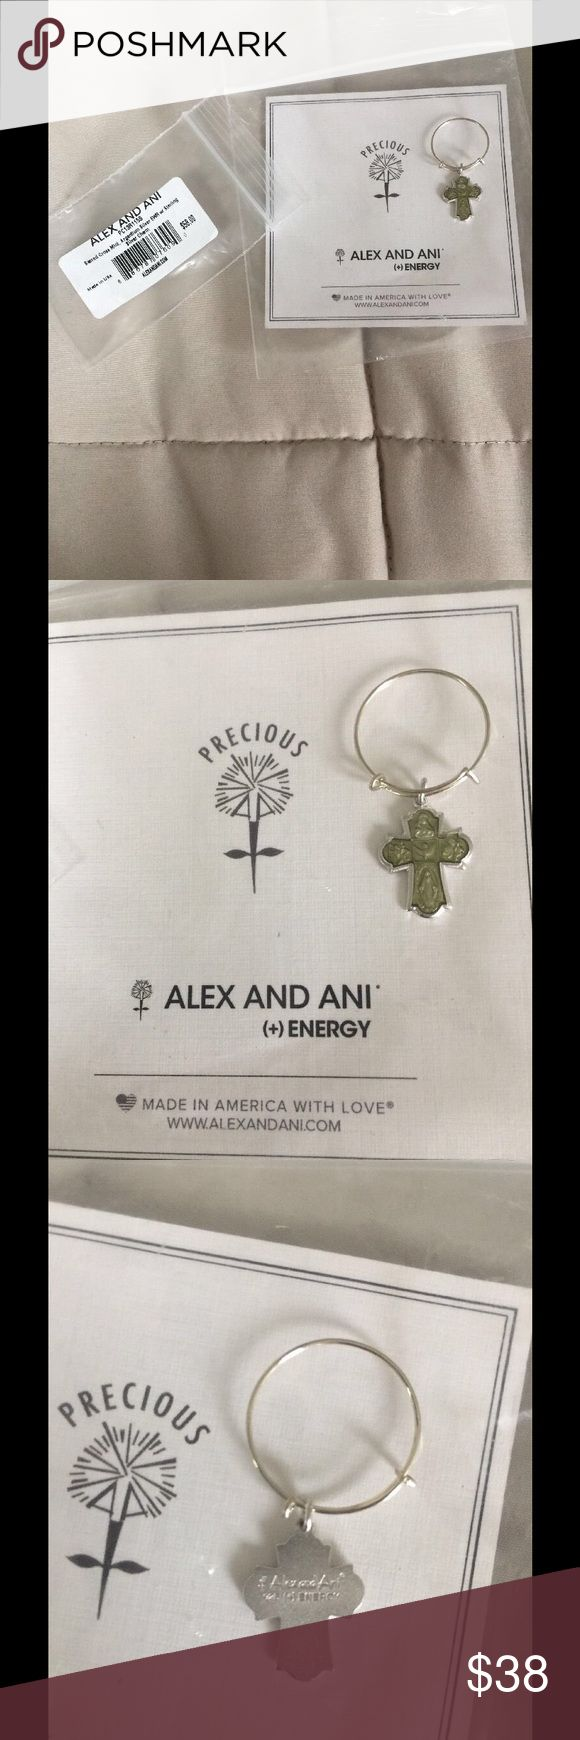 New Alex and Ani Sacred Cross Silver Wire Ring Brand new in original packaging Alex & Ani argentium/sterling silver adjustable, expandable ring. Sacred Cross Mini from the Precious Metal Collection.  Typically known as a four-way medal or a cruciform, the sacred cross is made up of four spiritual medals in one: the Sacred Heart of Jesus at the top, Saint Christopher on the right, the Blessed Mother at the bottom, and Saint Joseph on the left.  MSRP $58.00 Alex & Ani Jewelry Rings